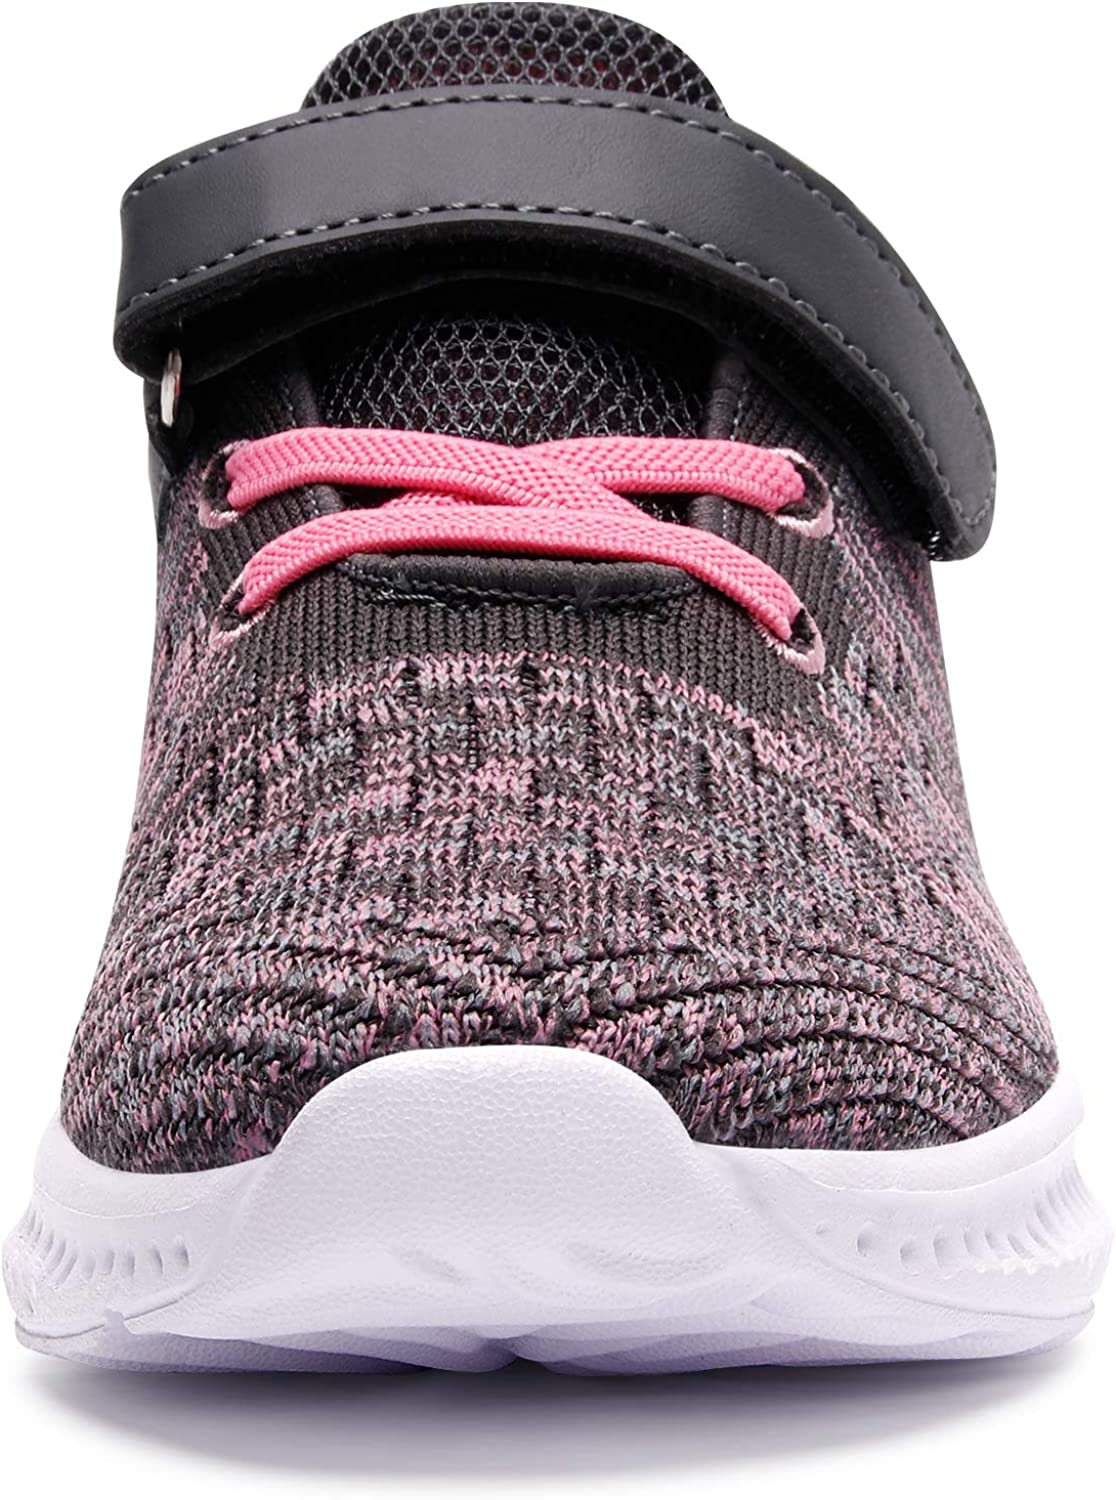 Spesoul Kids Fashion Sneakers Outdoor Lightweight Breathable Athletic Running Walking Shoes for Girls Boys